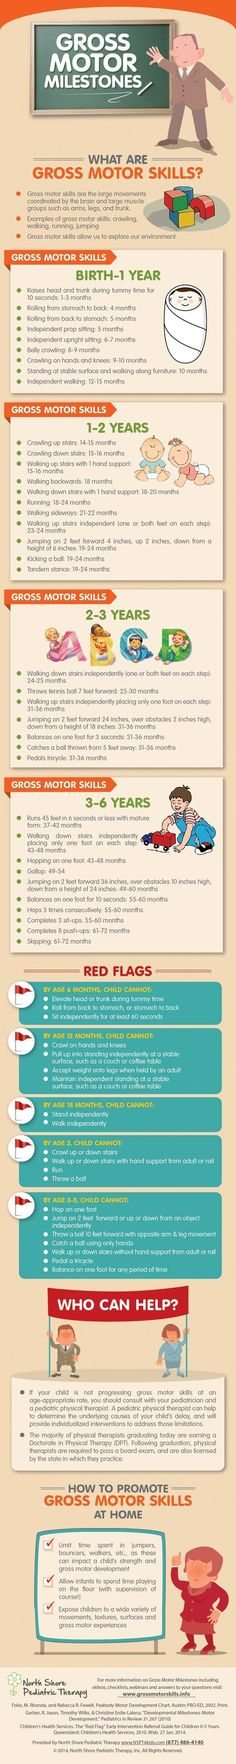 Understand gross motor skills and your child's development: